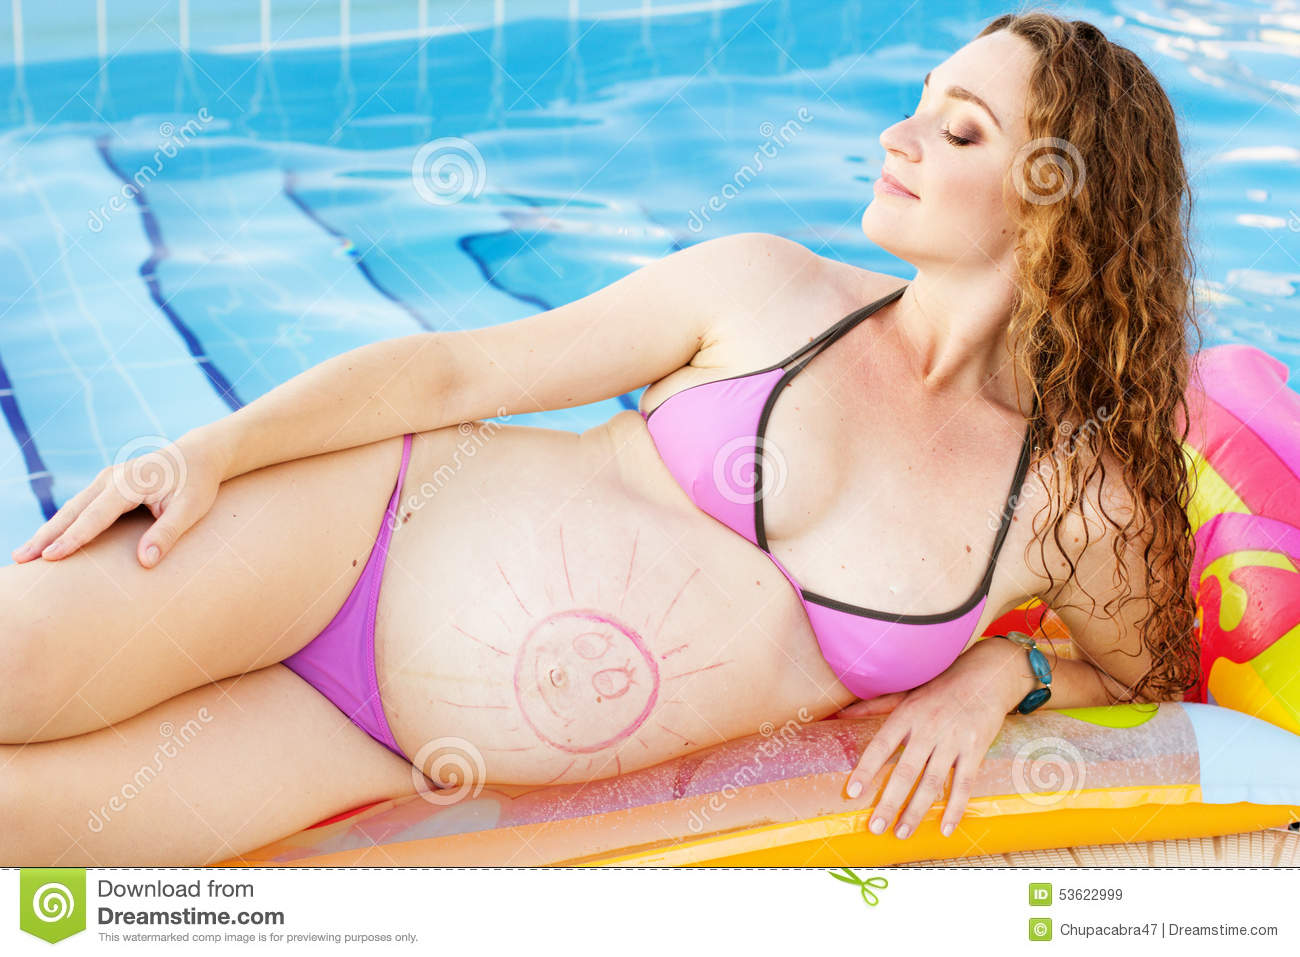 bd66951a56425 Beautiful pregnant woman is wearing swimsuit is lying and resting on colorful  mattress near swimming pool with blue water, vacations